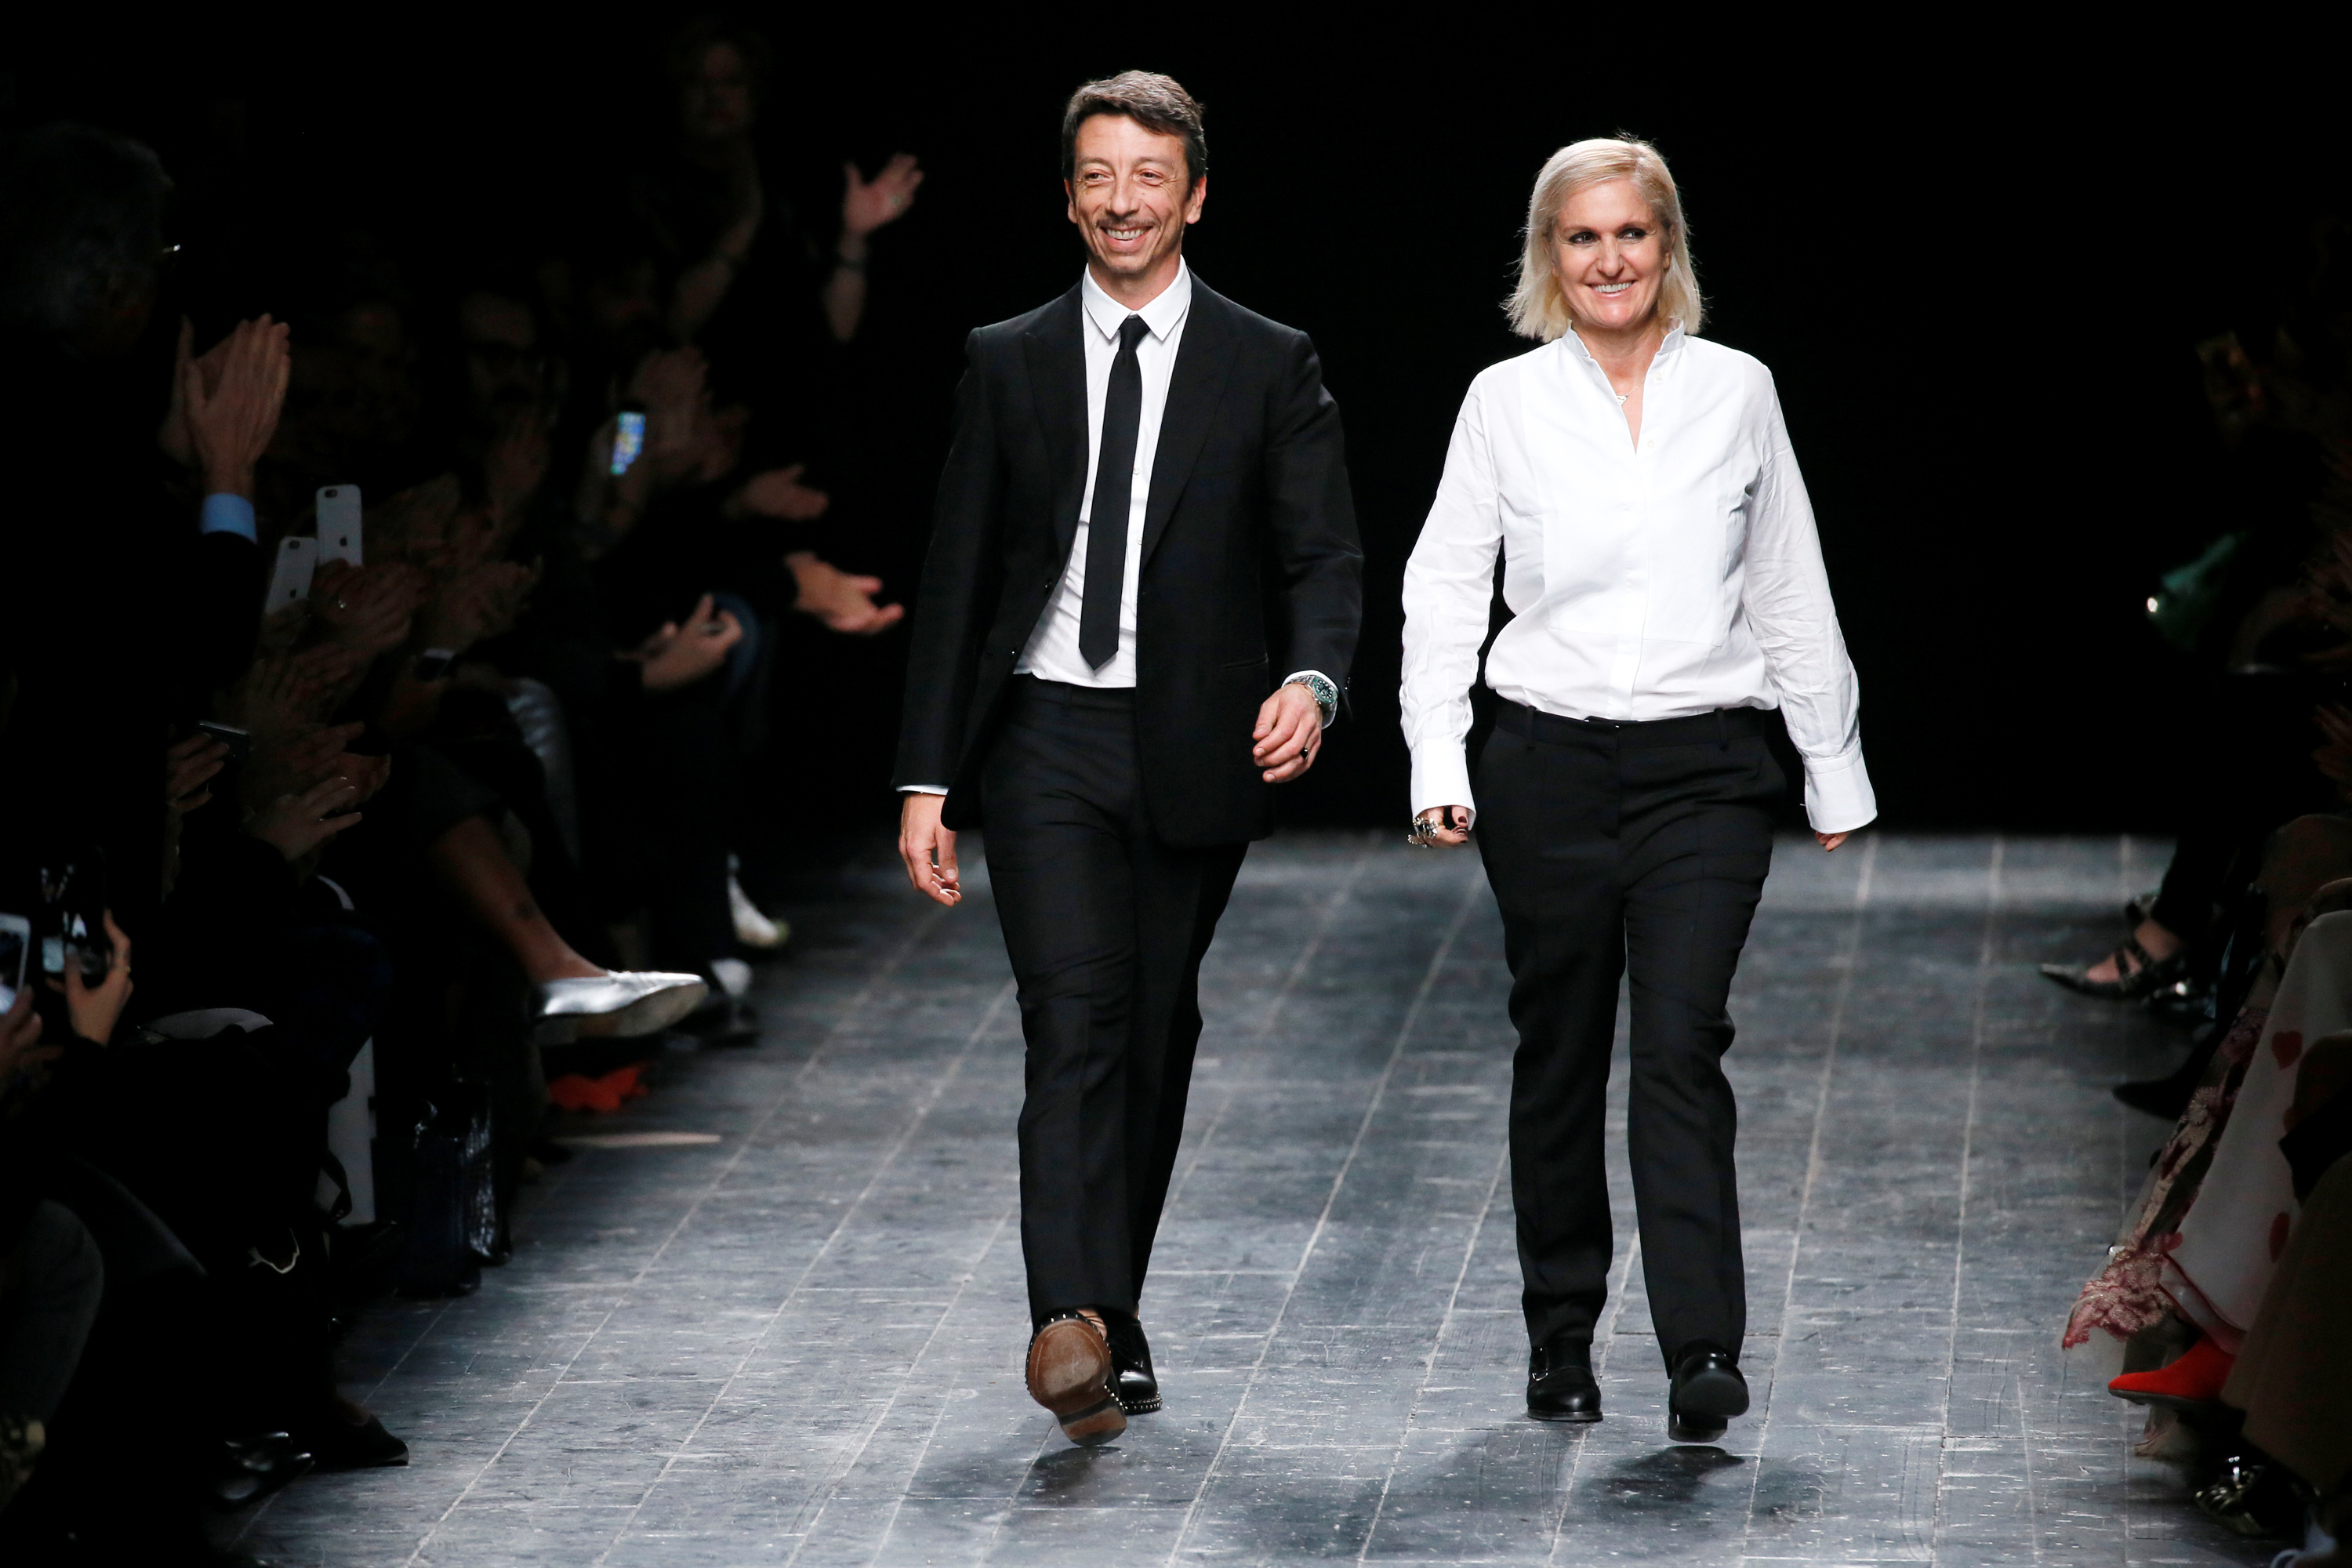 Italian designers Maria Grazia Chiuri and Pier Paolo Piccioli appear at the end of their Fall/Winter 2016/2017 women's ready-to-wear collection for fashion house Valentino in Paris, France, March 8, 2016. REUTERS/Gonzalo Fuentes/File Photo - RTX2HSU2